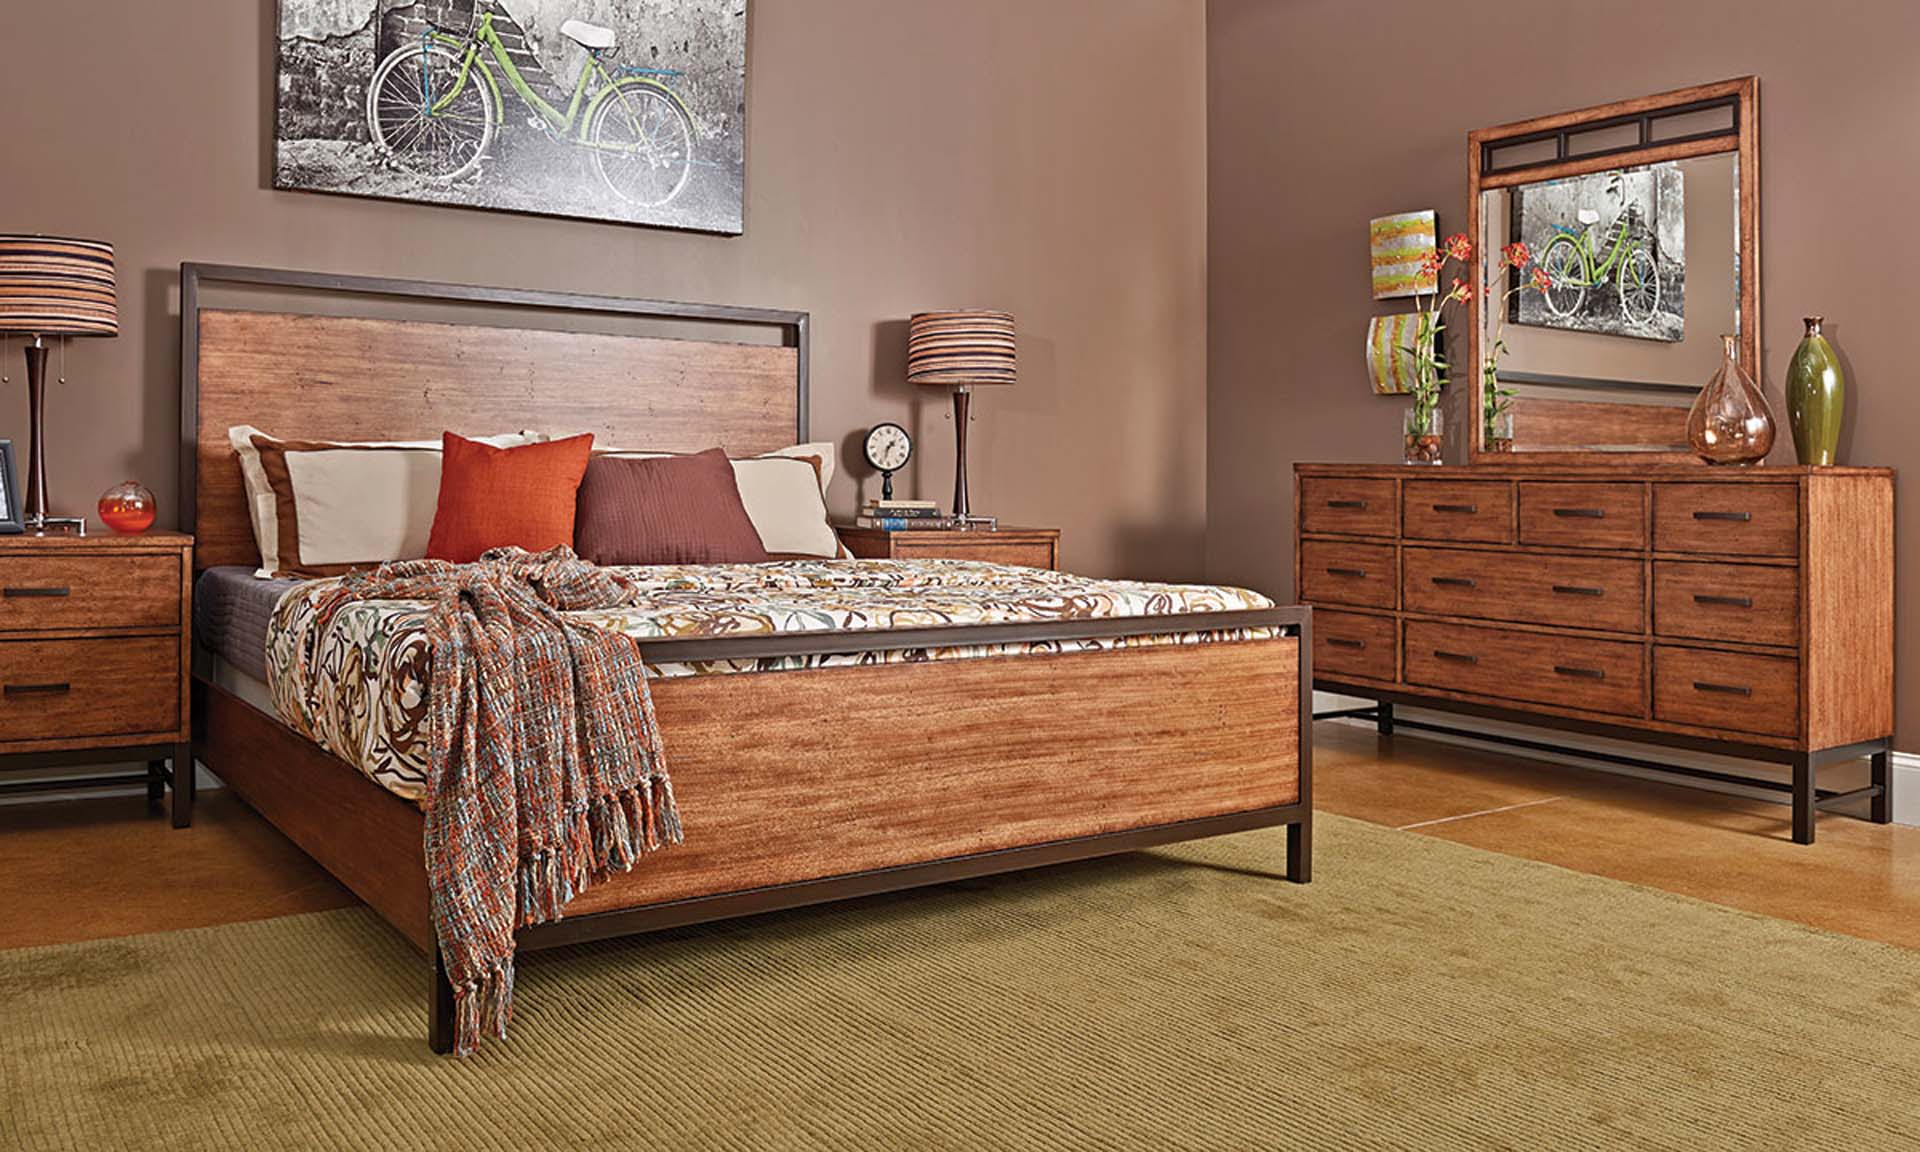 Buy Here Pay Here Atlanta Ga >> Klaussner Affinity Queen Panel Bedroom Set | The Dump Luxe ...